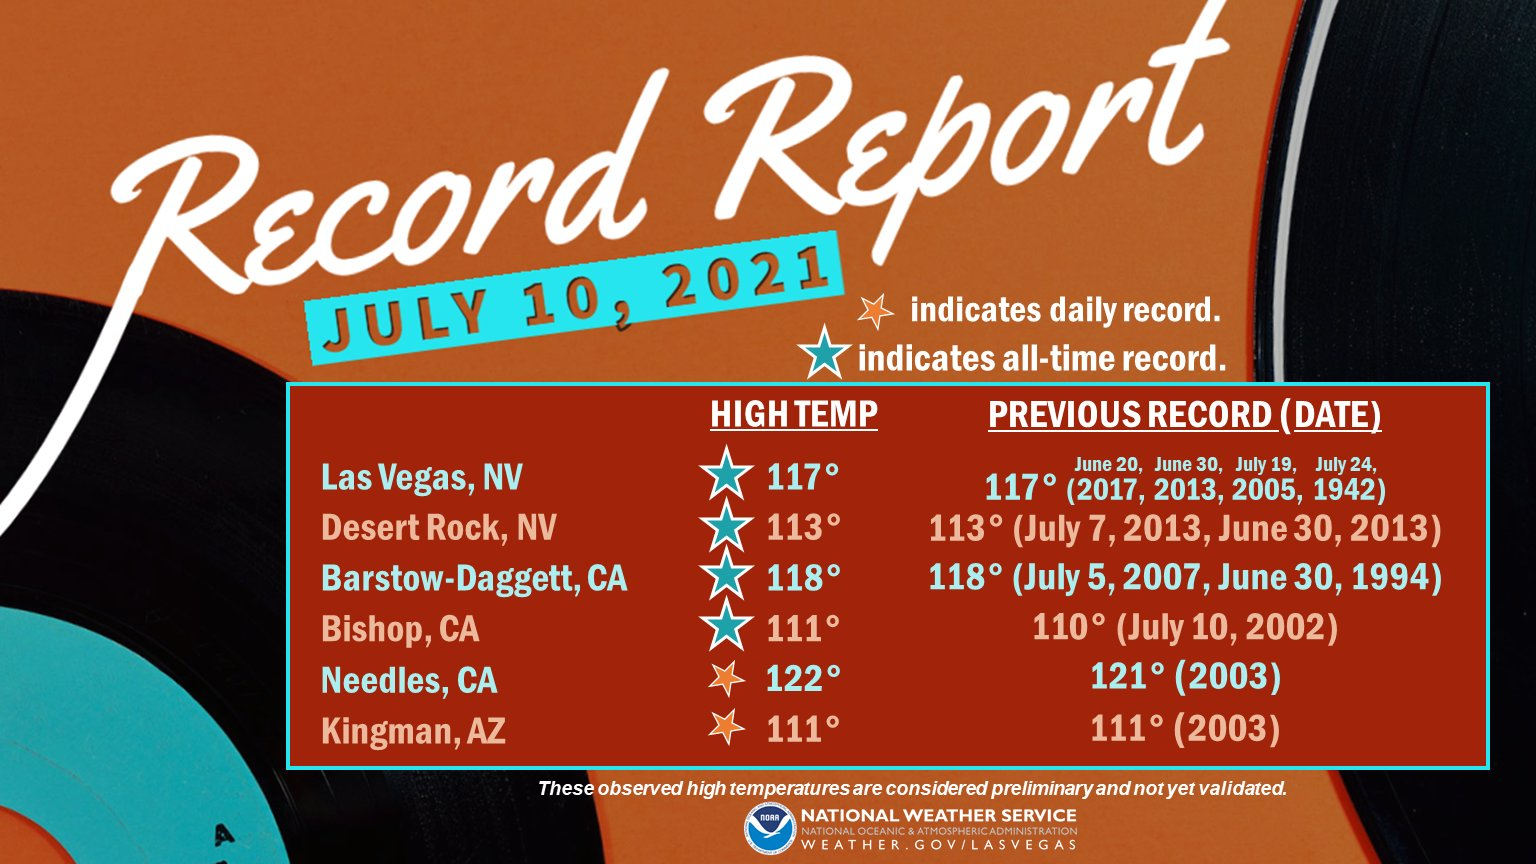 heat-dome-record-breaking-heatwave-death-valley-all-time-records